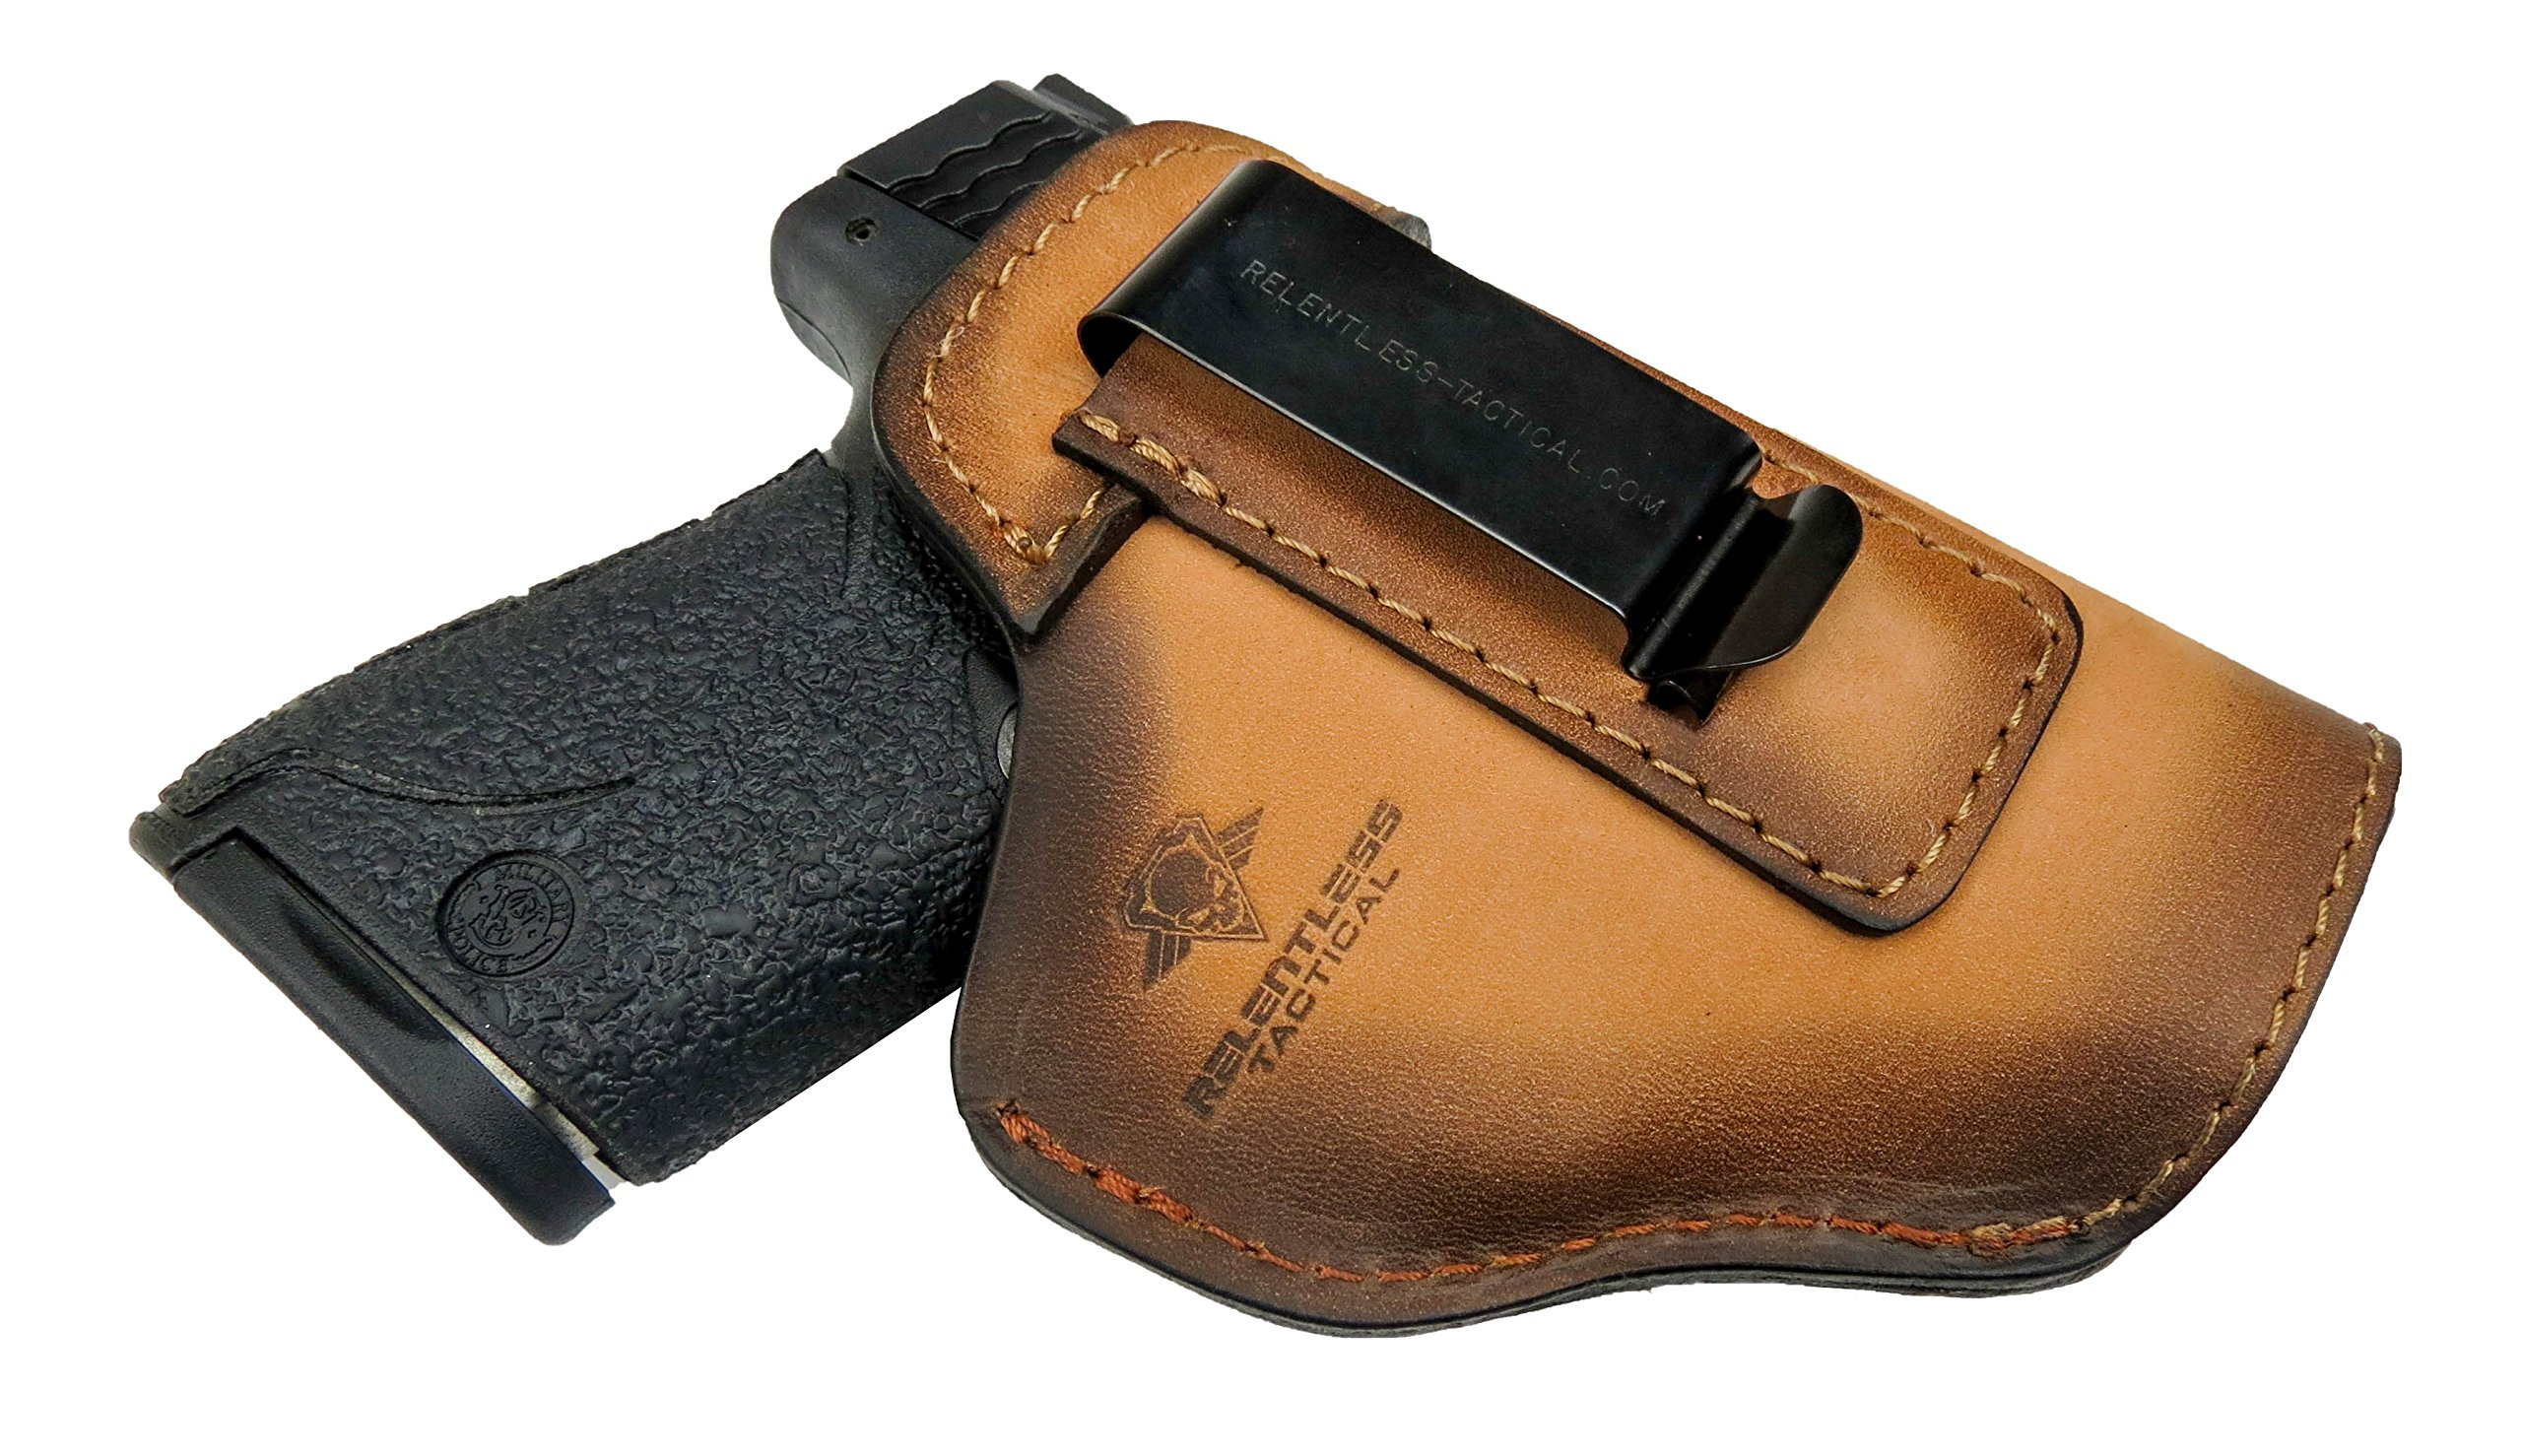 Relentless Tactical The Defender Leather IWB Holster - Made in USA - For S&W M&P Shield - GLOCK 17 19 22 23 32 33/Springfield XD & XDS/Plus All Similar Sized Handguns – Charred Oak – Right Handed by Relentless Tactical (Image #1)